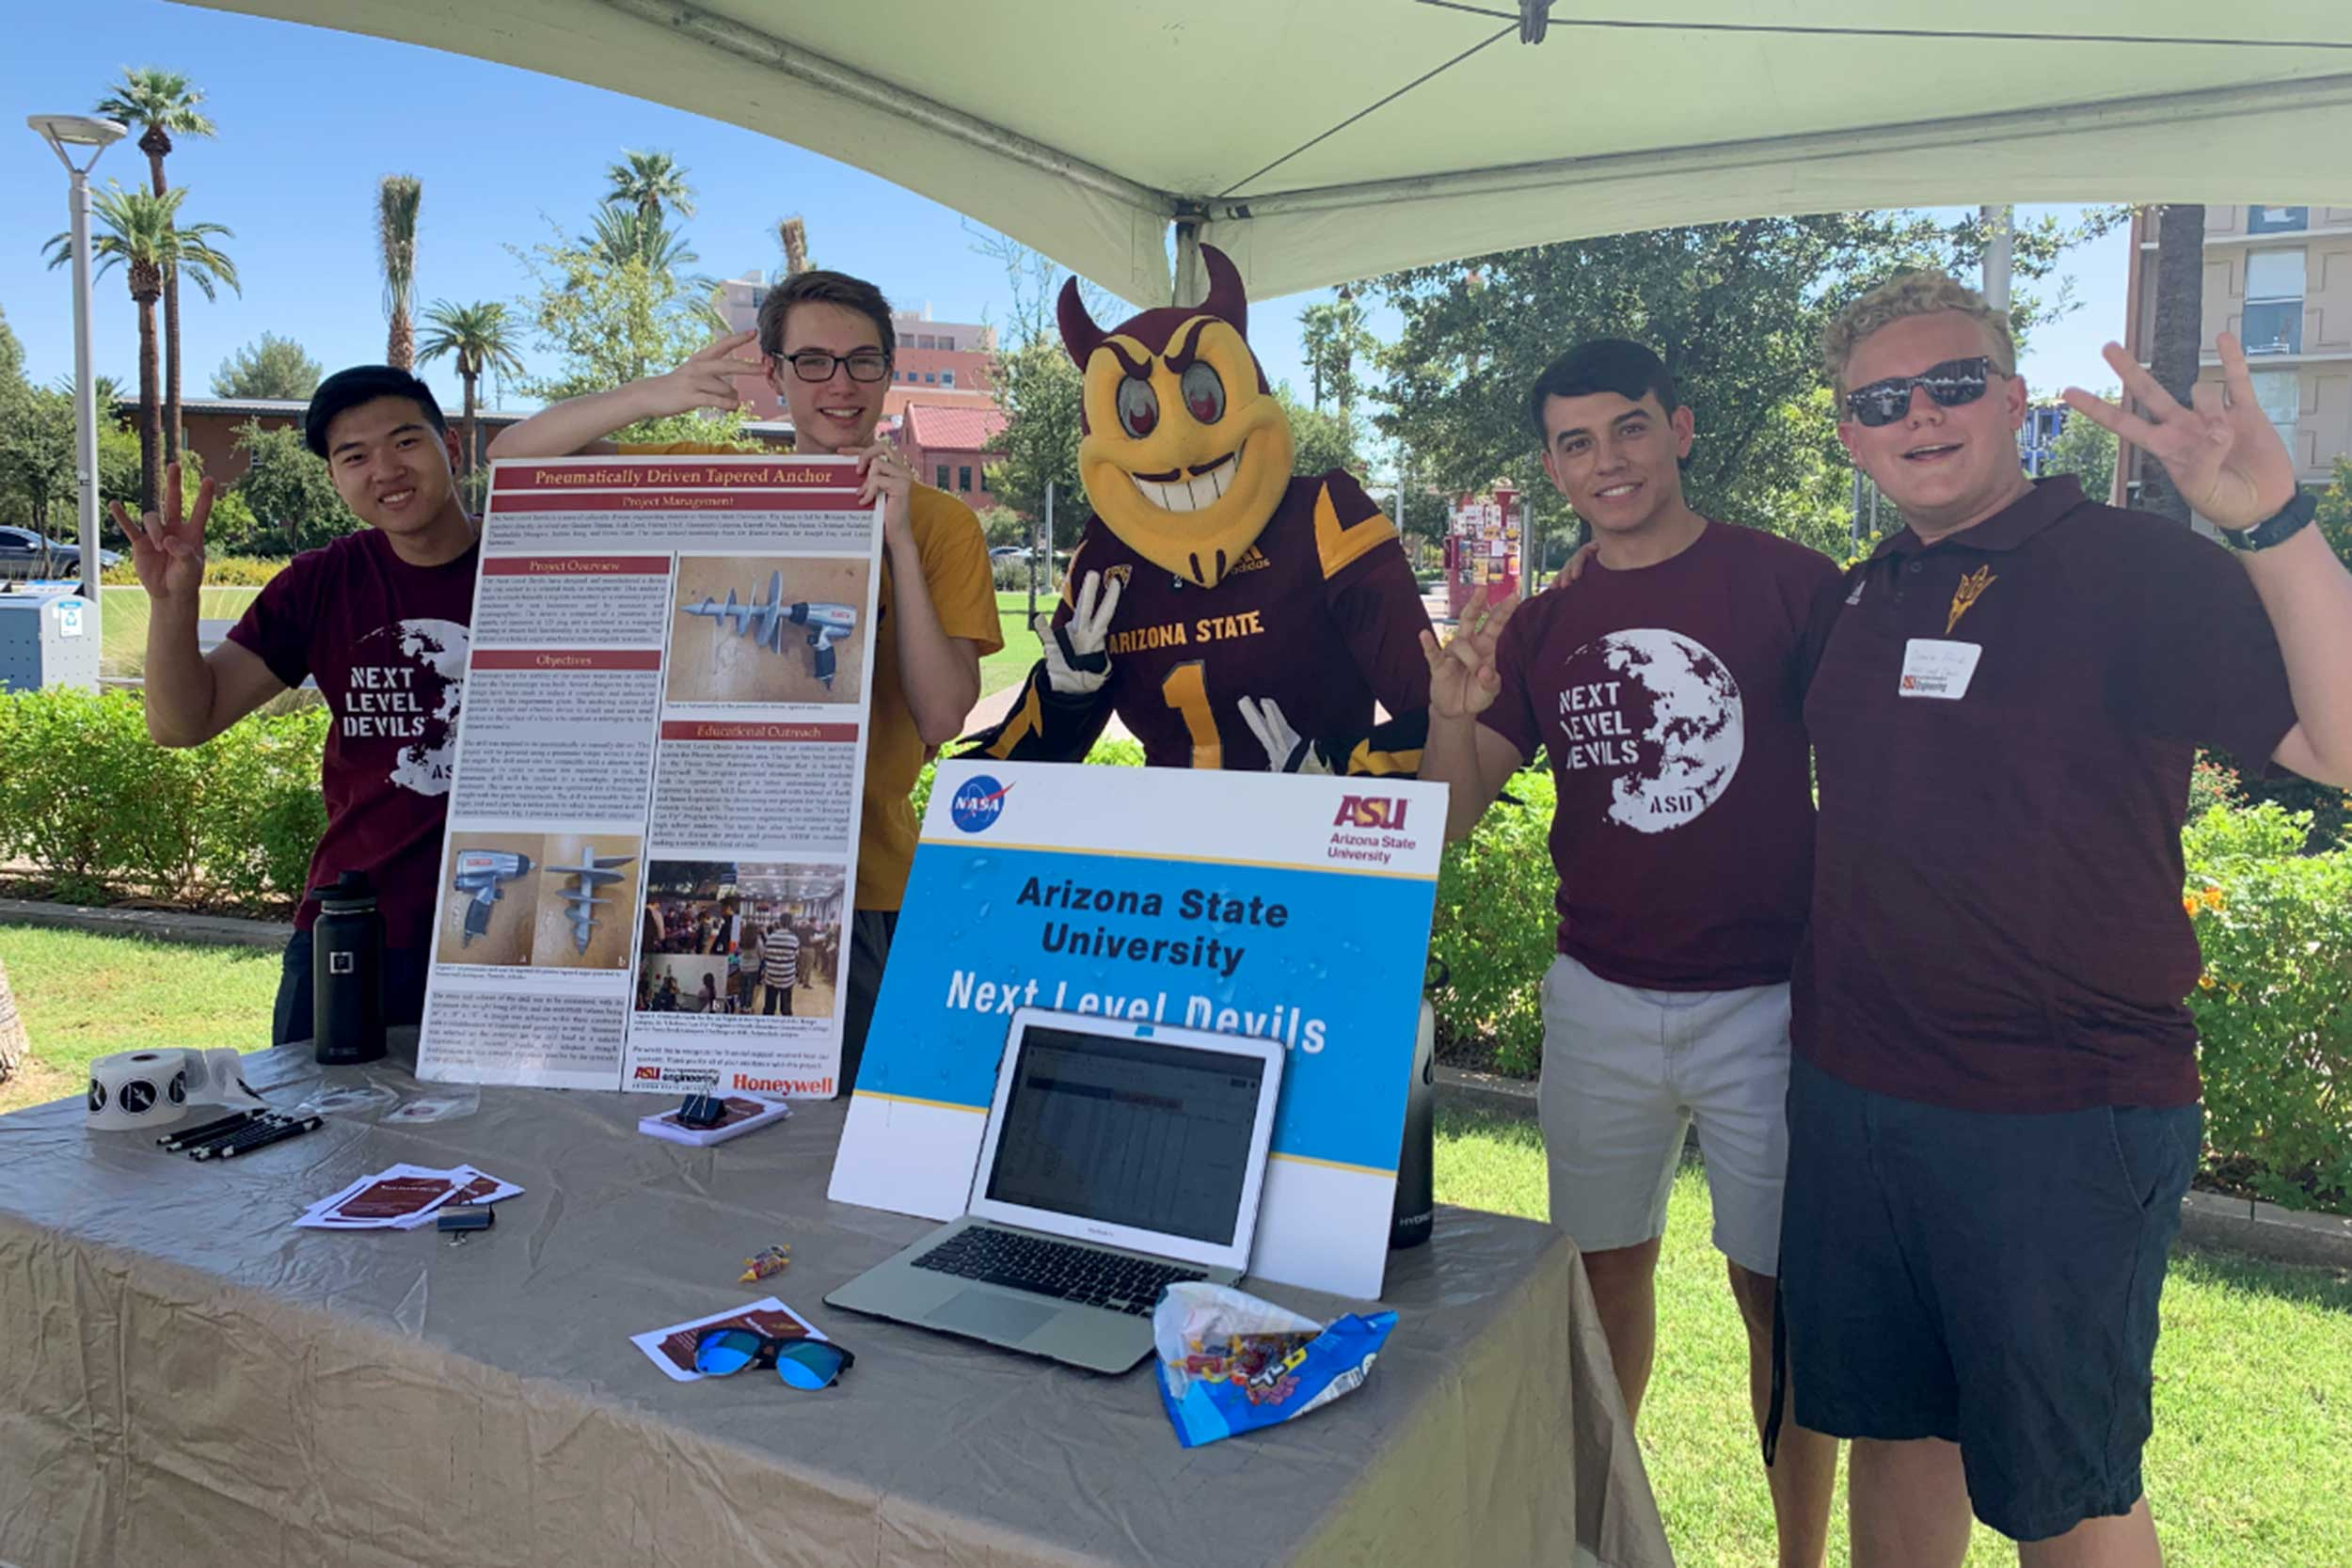 Four Next Level Devils members pose with ASU's mascot Sparky at a 2019 event